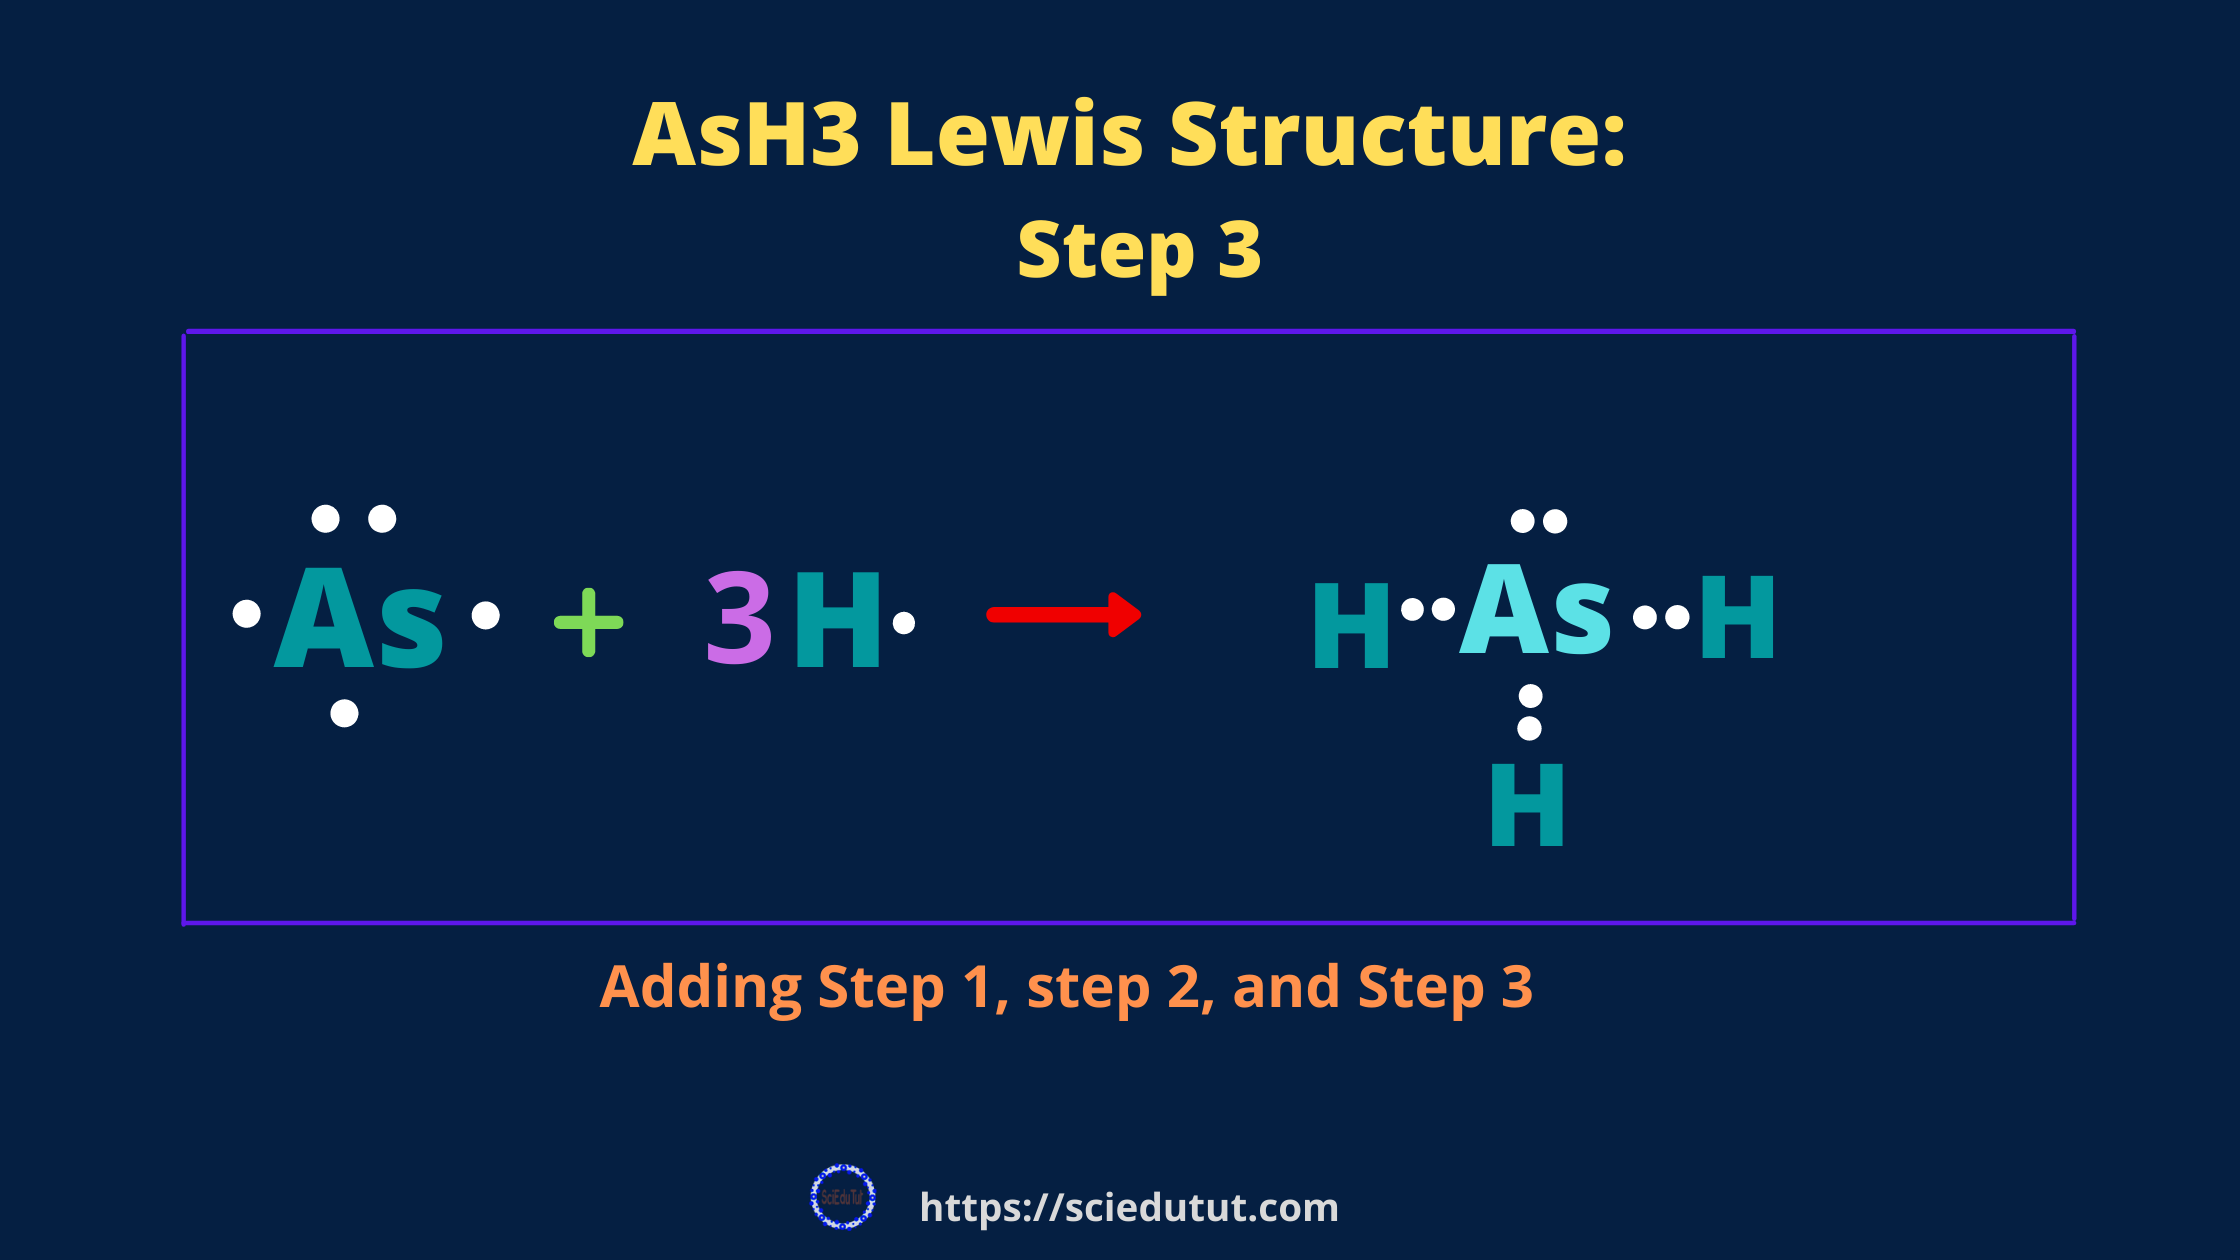 How to draw AsH3 Lewis Structure?